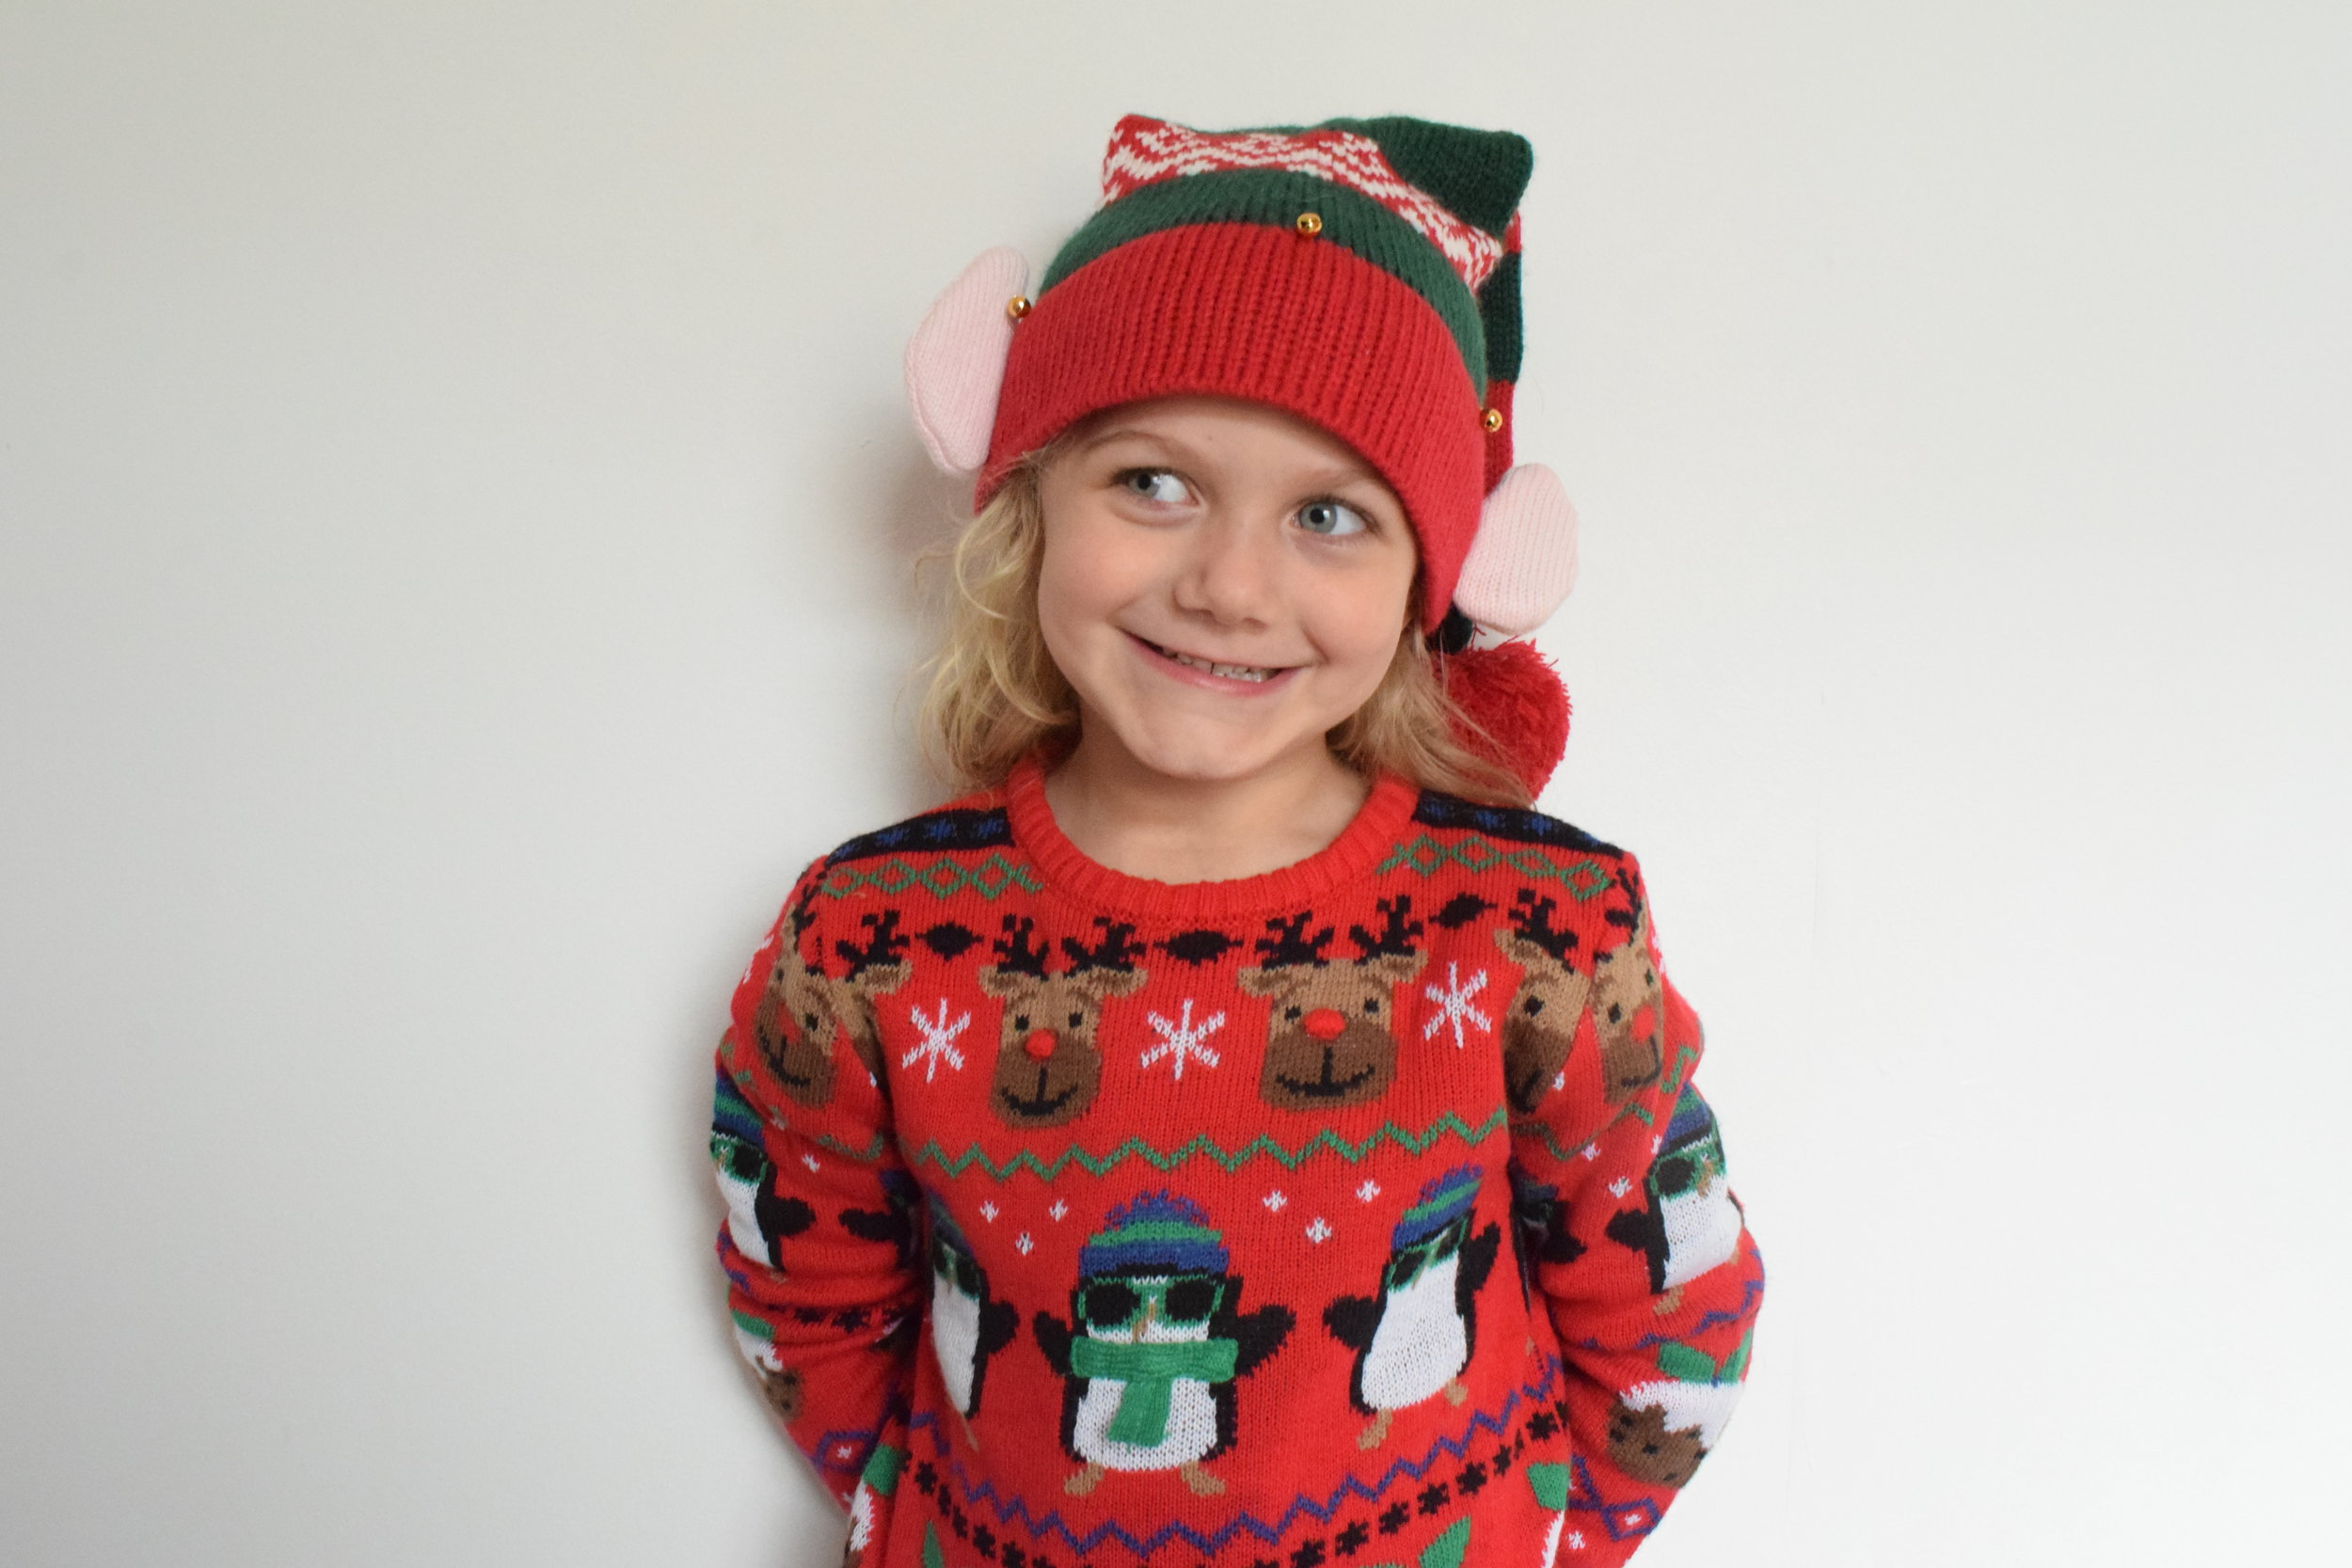 Squidgy dressed up in her favourite Christmas jumper and elf hat